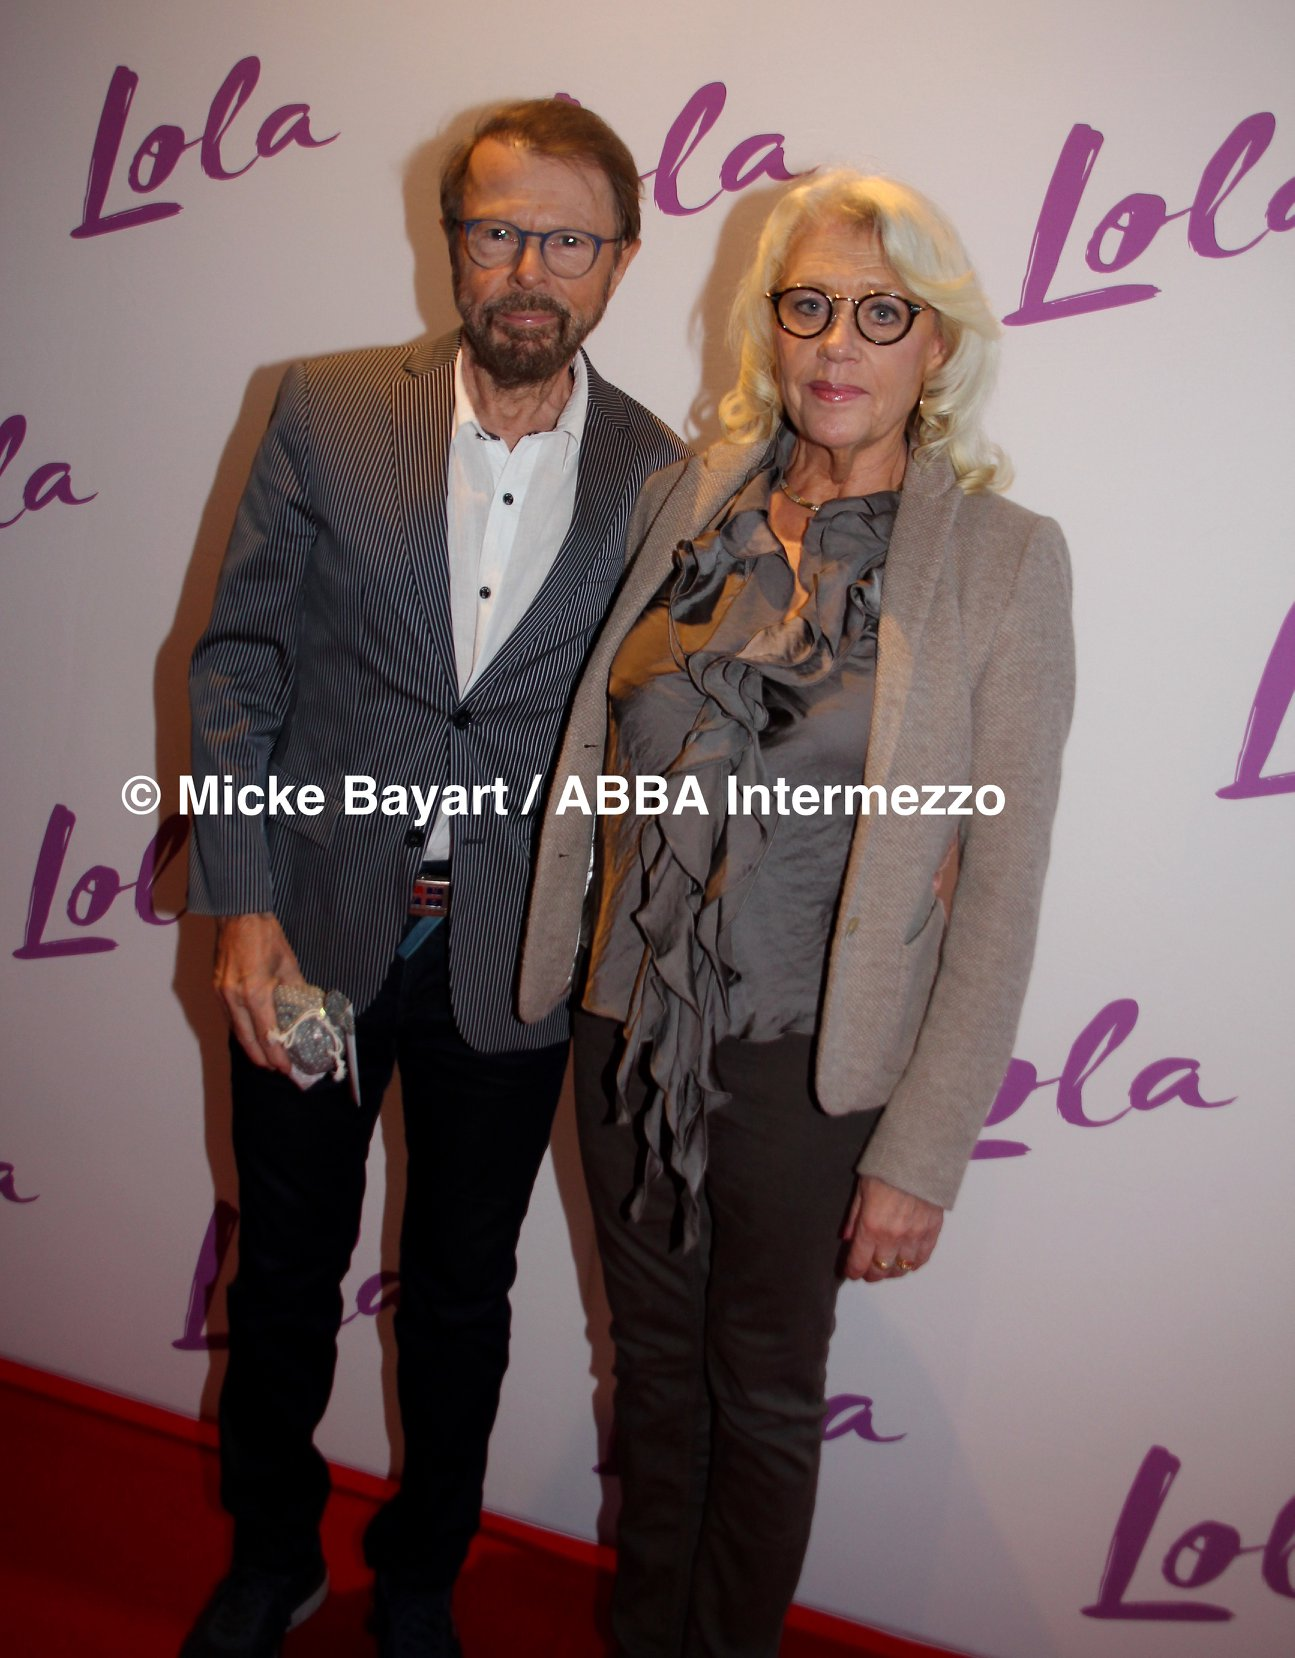 Lola premiere in Stockholm - Photo © Micke Bayart